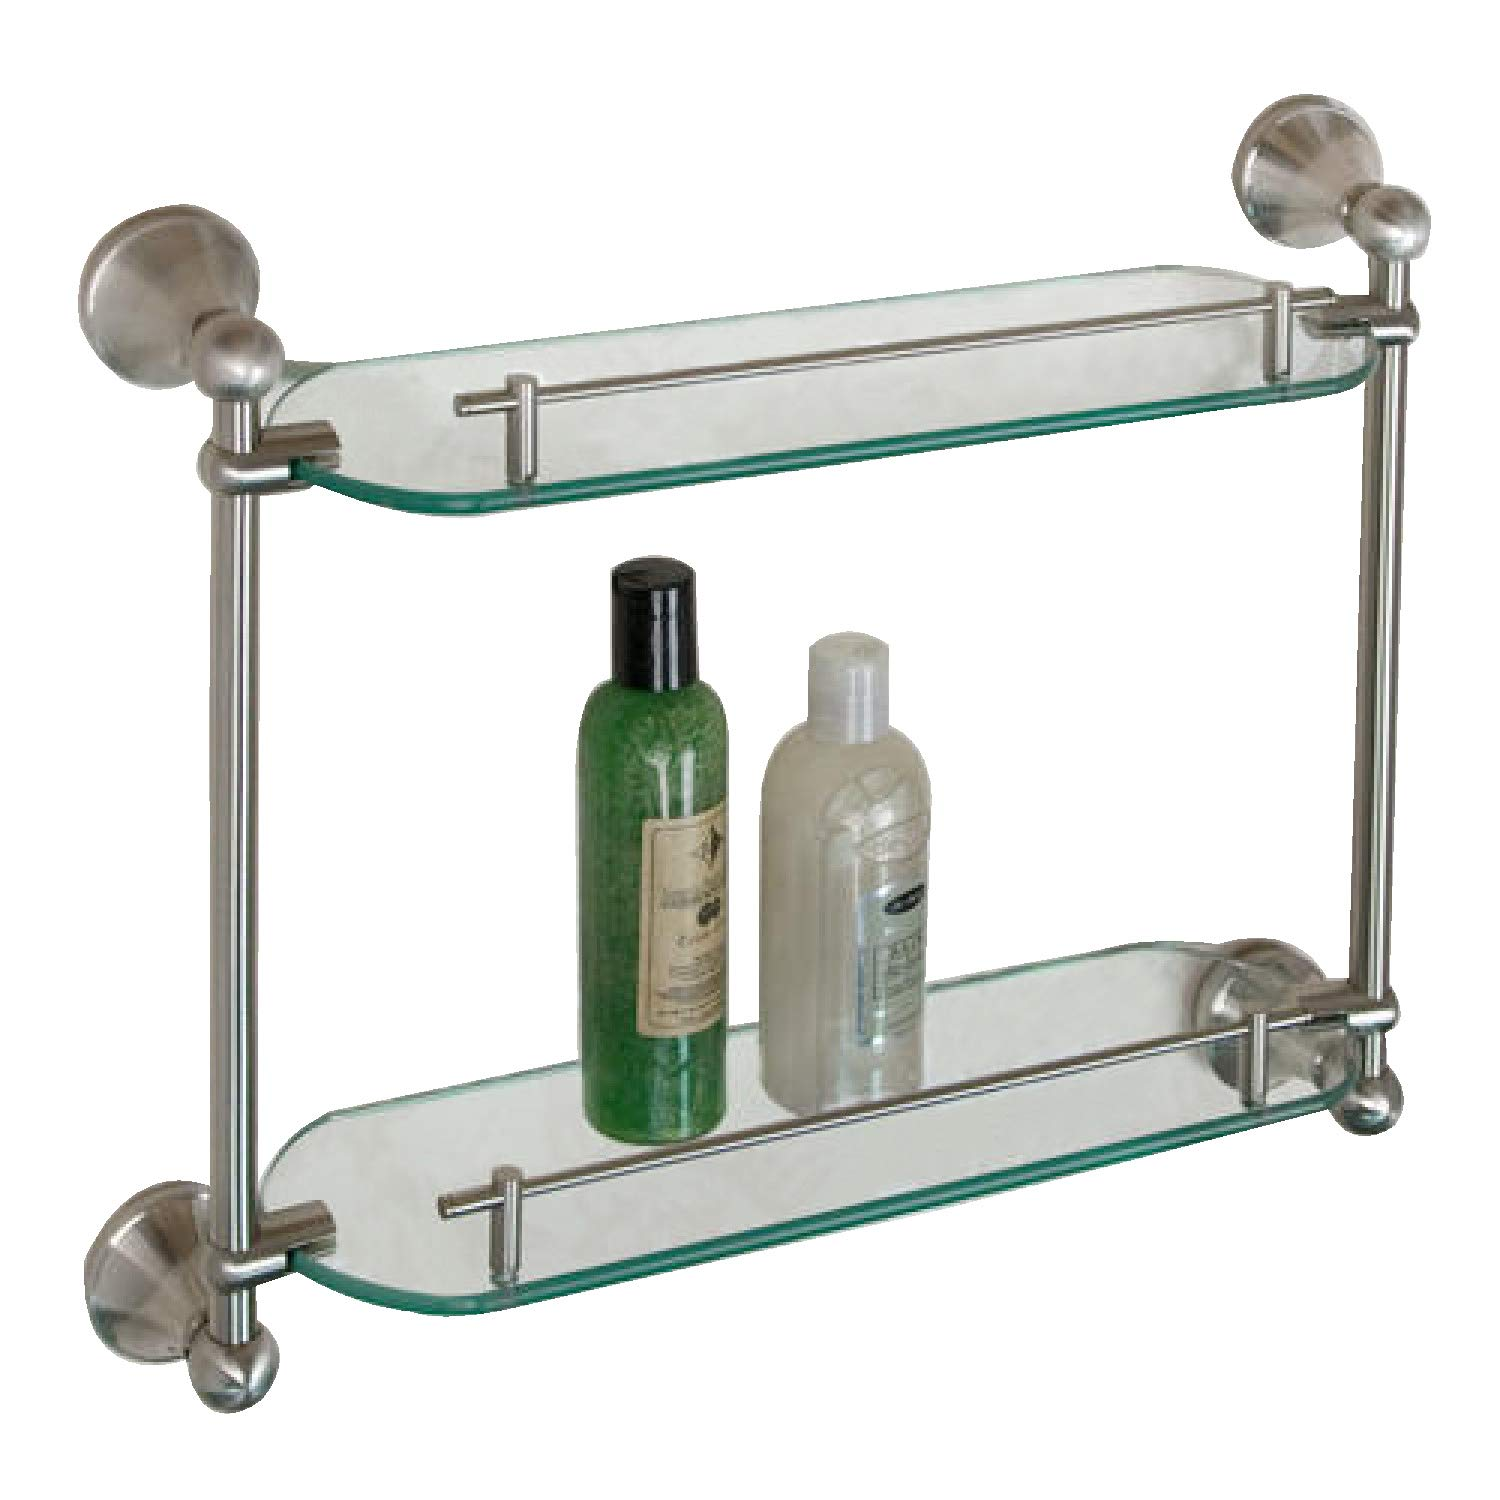 Naiture Collection Tempered Glass Shelf - Two Shelves in Brushed Nickel Finish